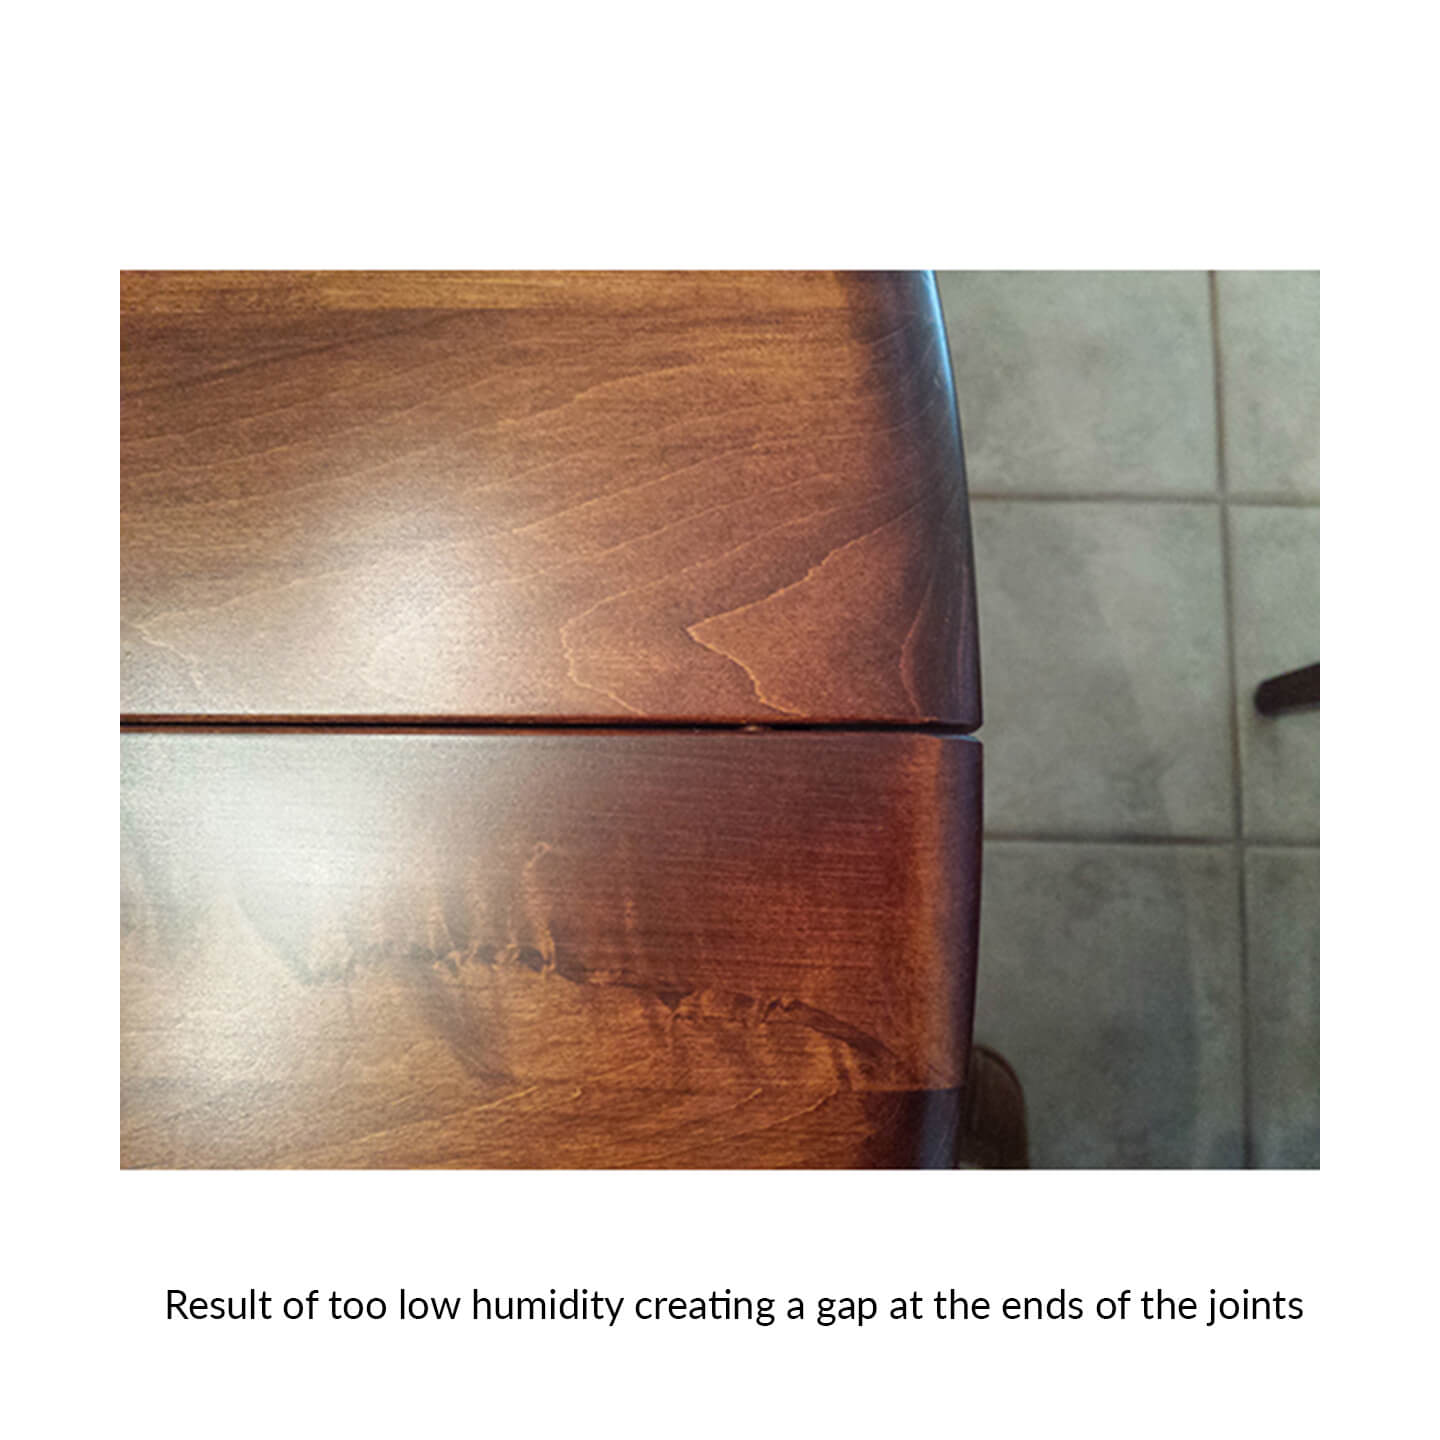 3.-result-of-too-low-humidity-creating-a-gap-at-the-ends-of-the-joints.jpg